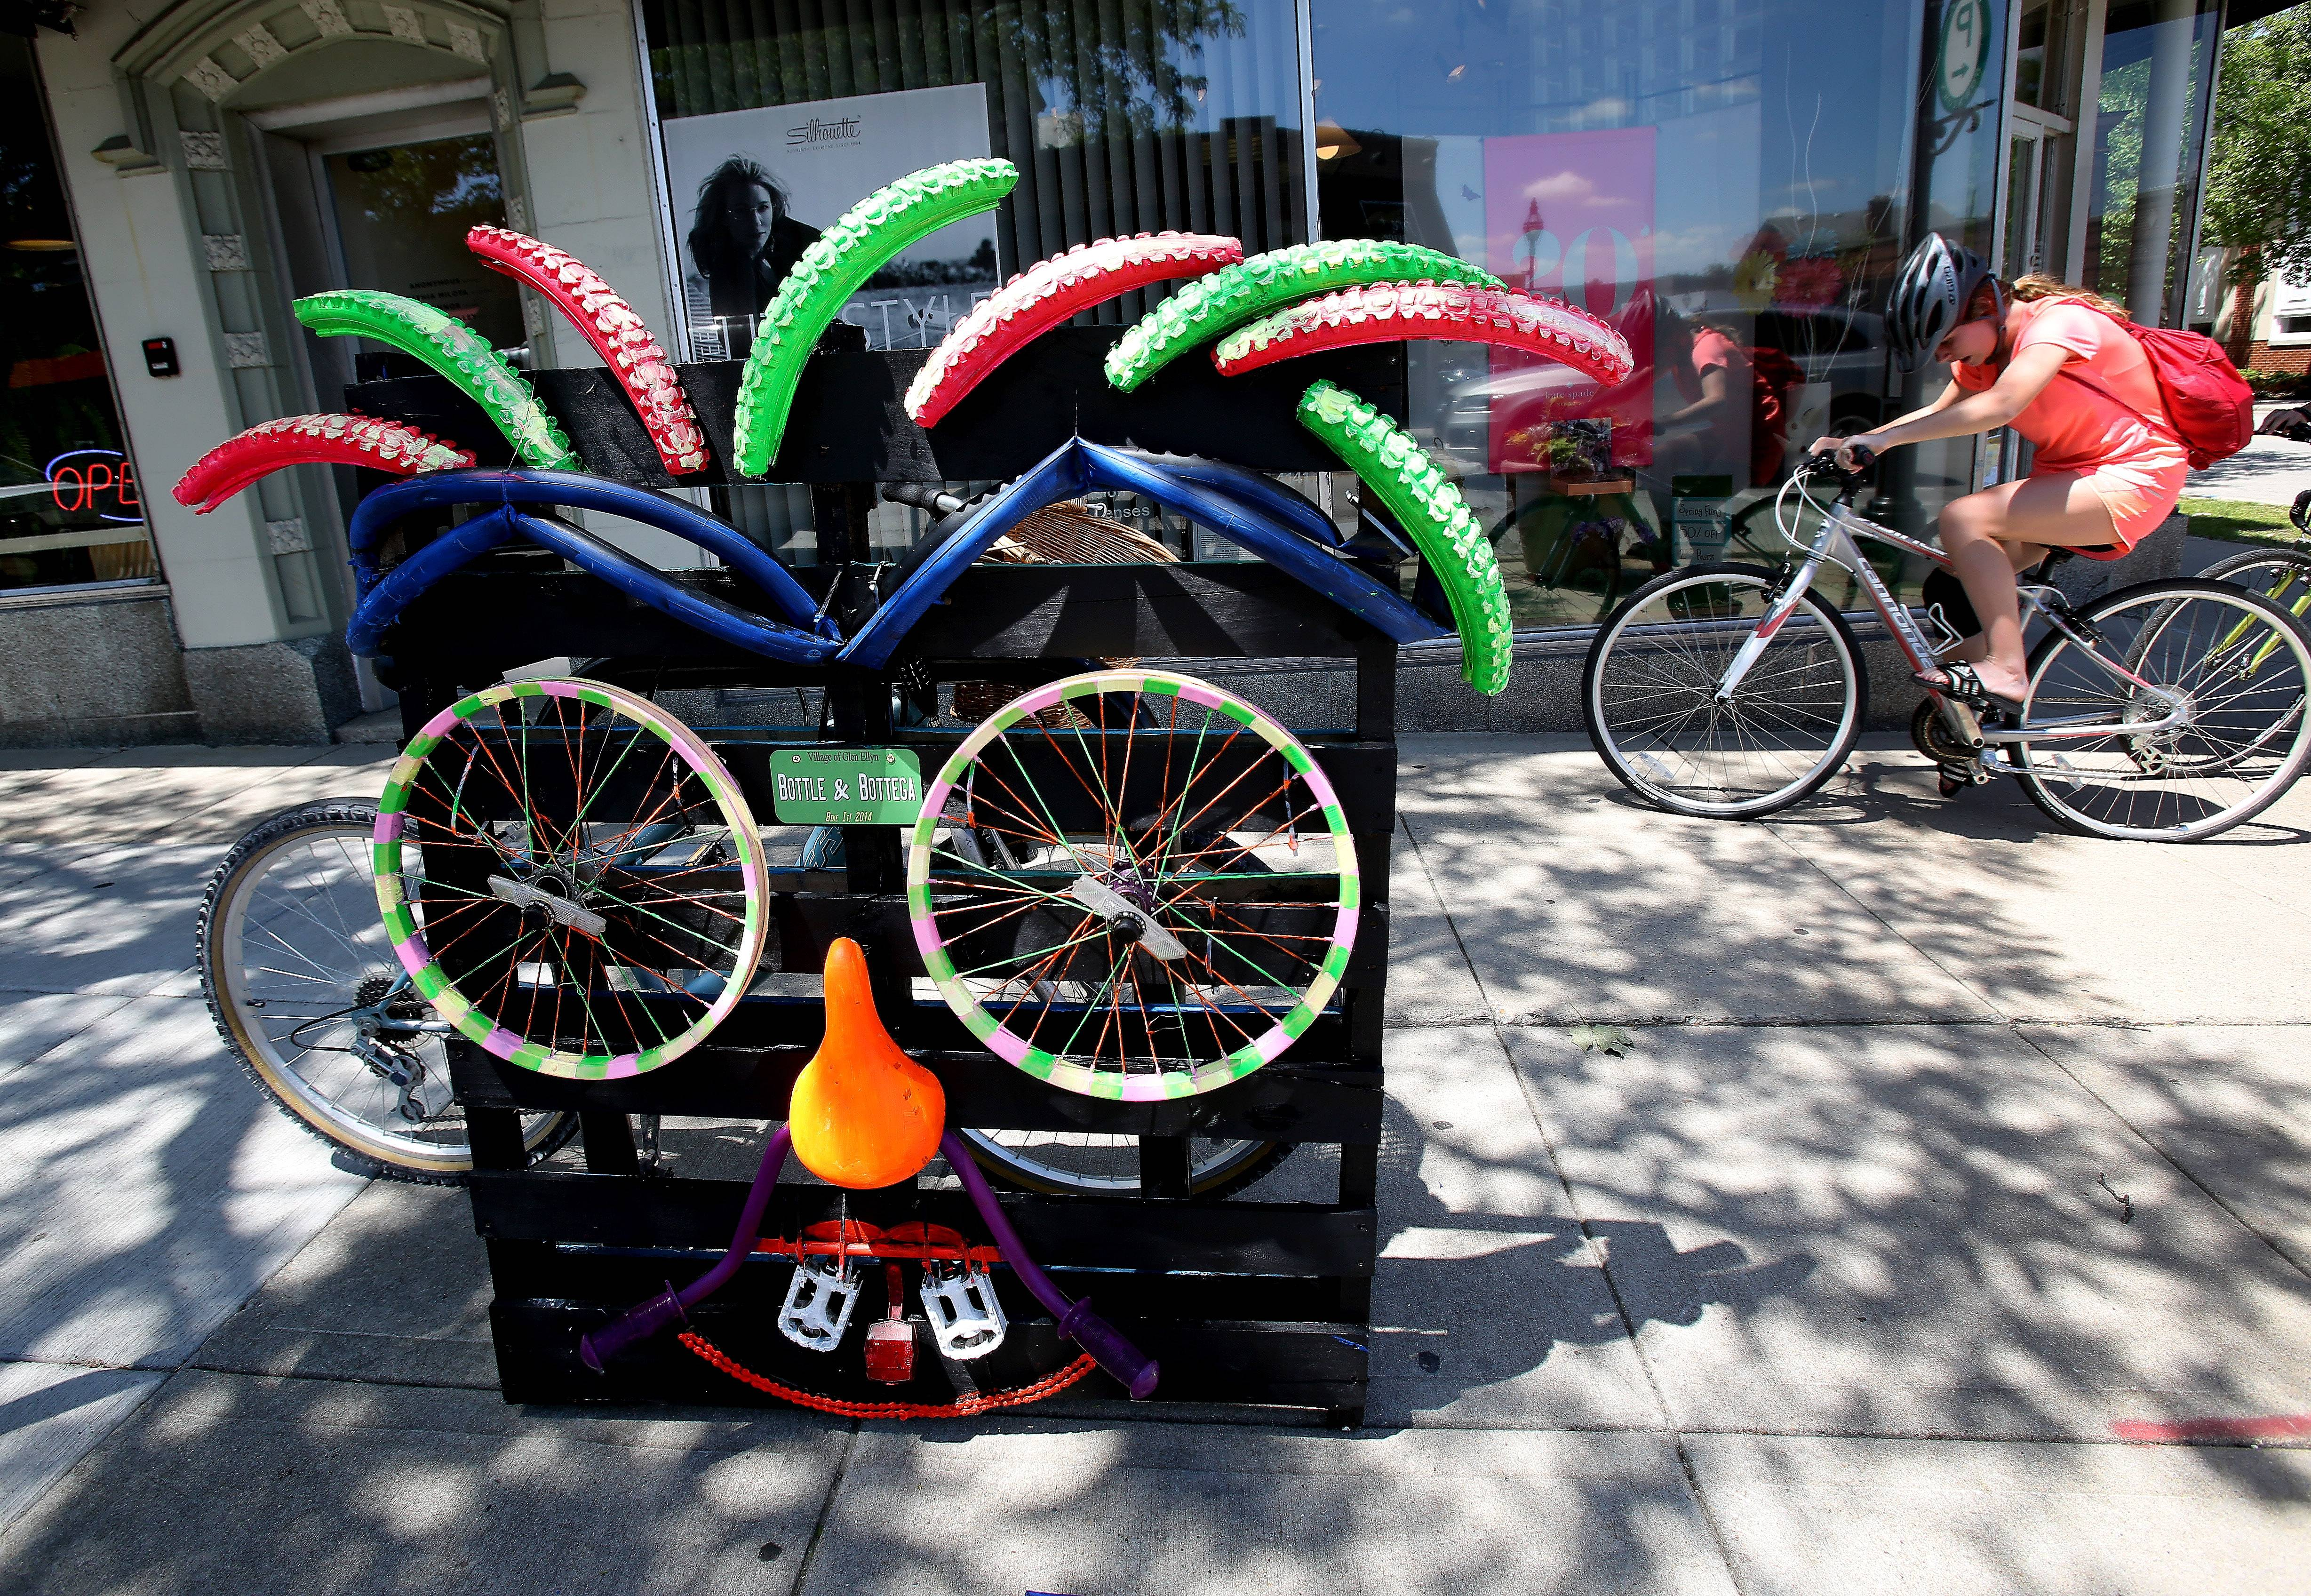 Decorated bikes can be seen in downtown Glen Ellyn as part of a public art exhibit celebrating biking.